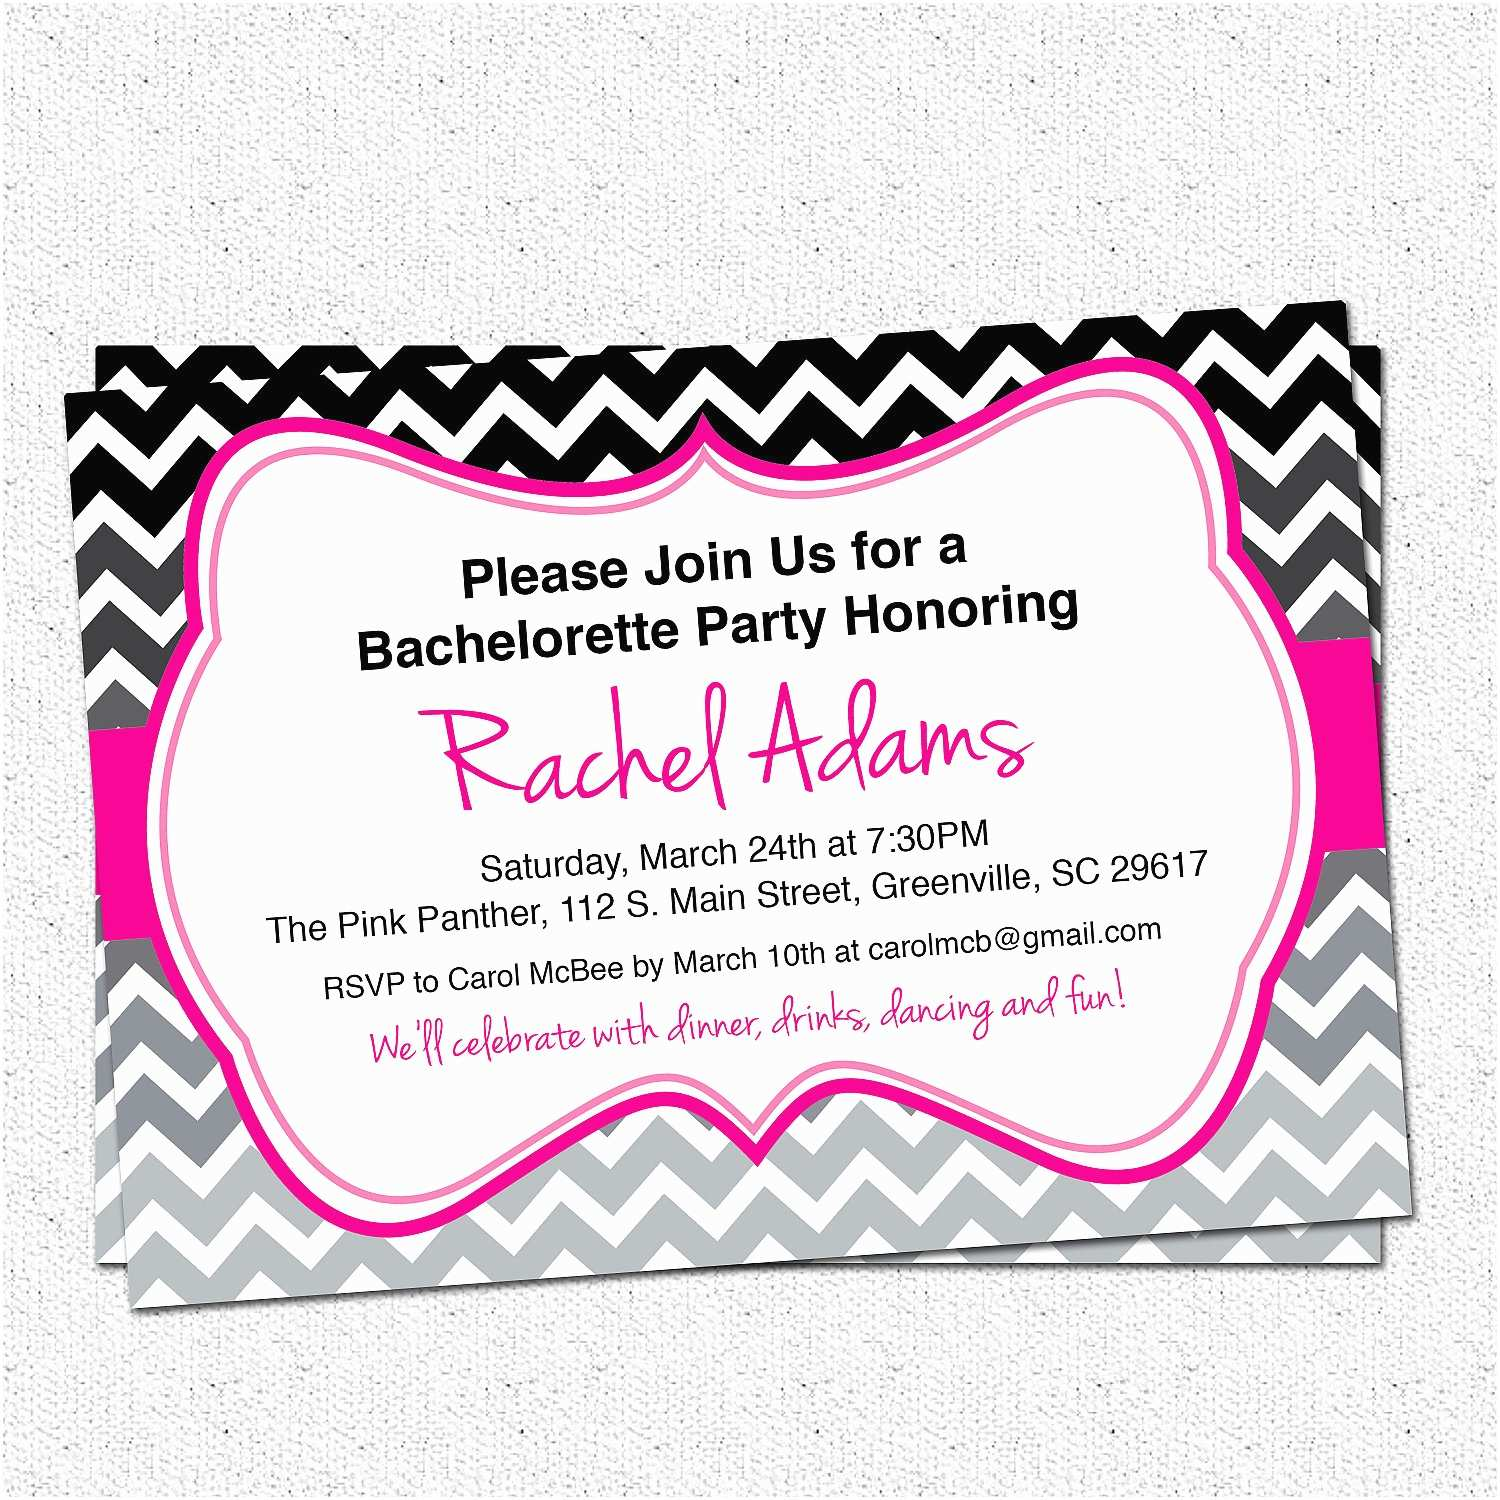 Bachelorette Party Invitations Bachelorette Party Invite Template